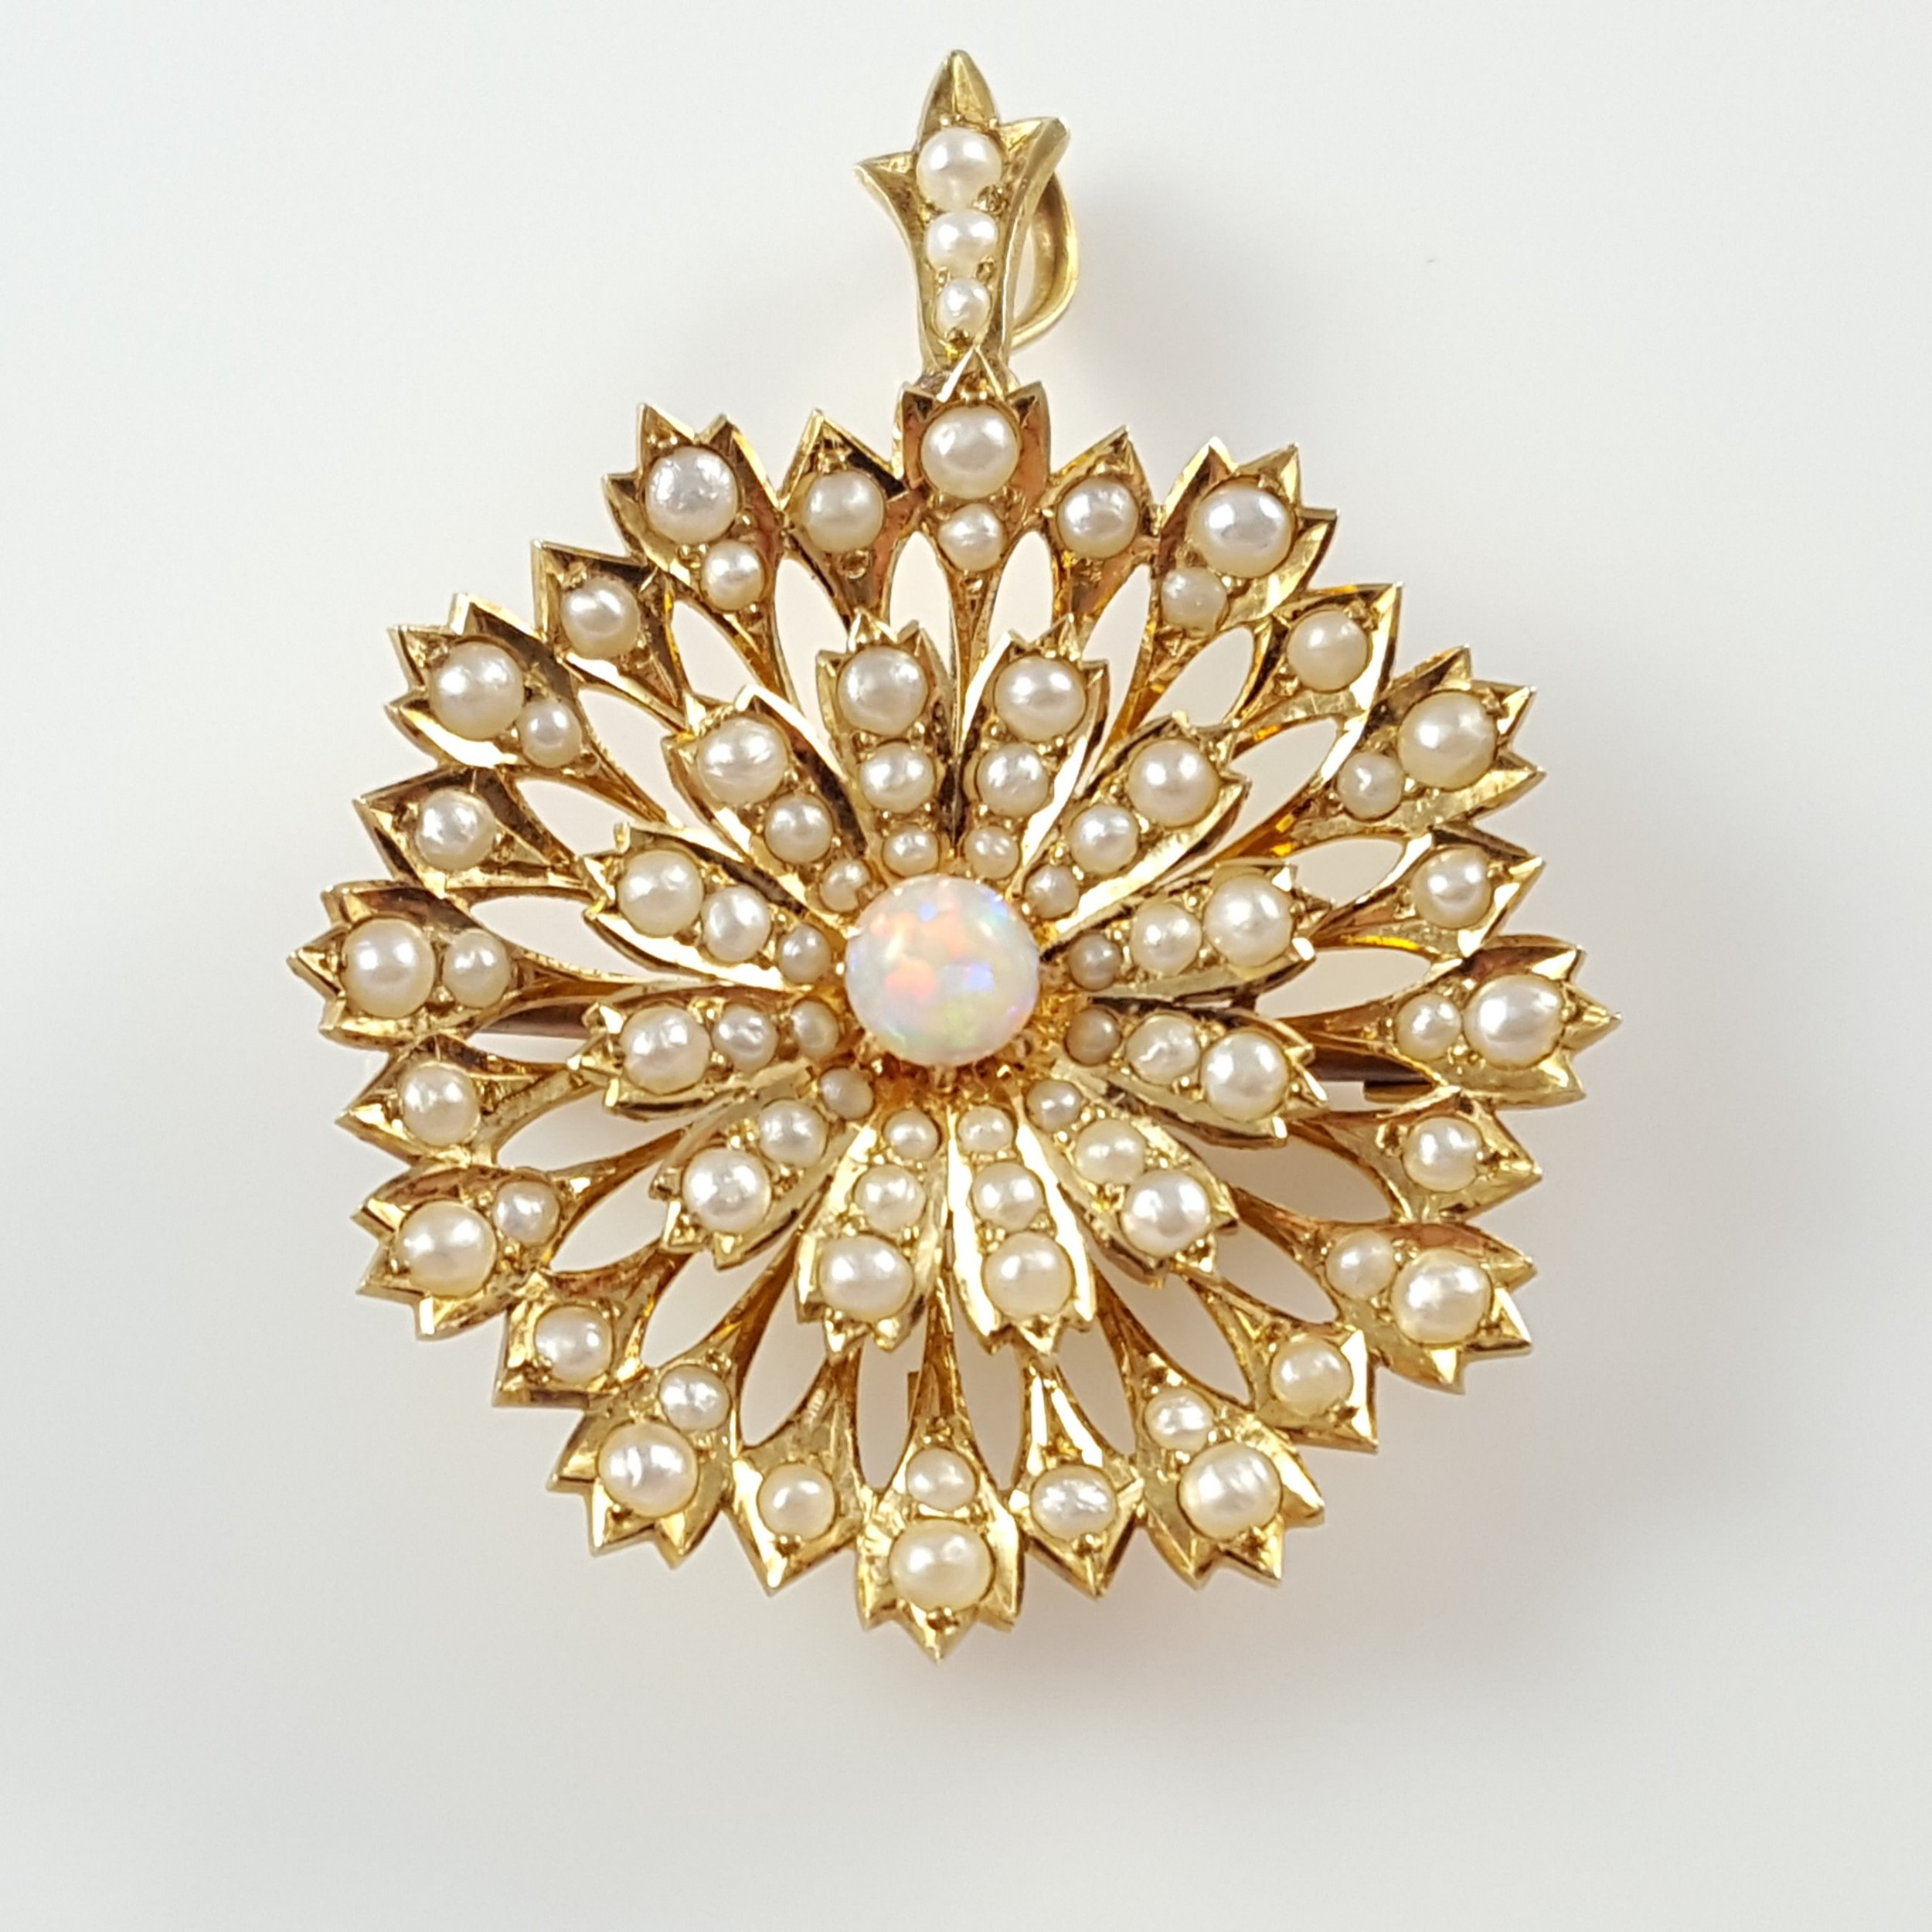 edwardian 15ct gold opal cabochon seed pearl pendant brooch